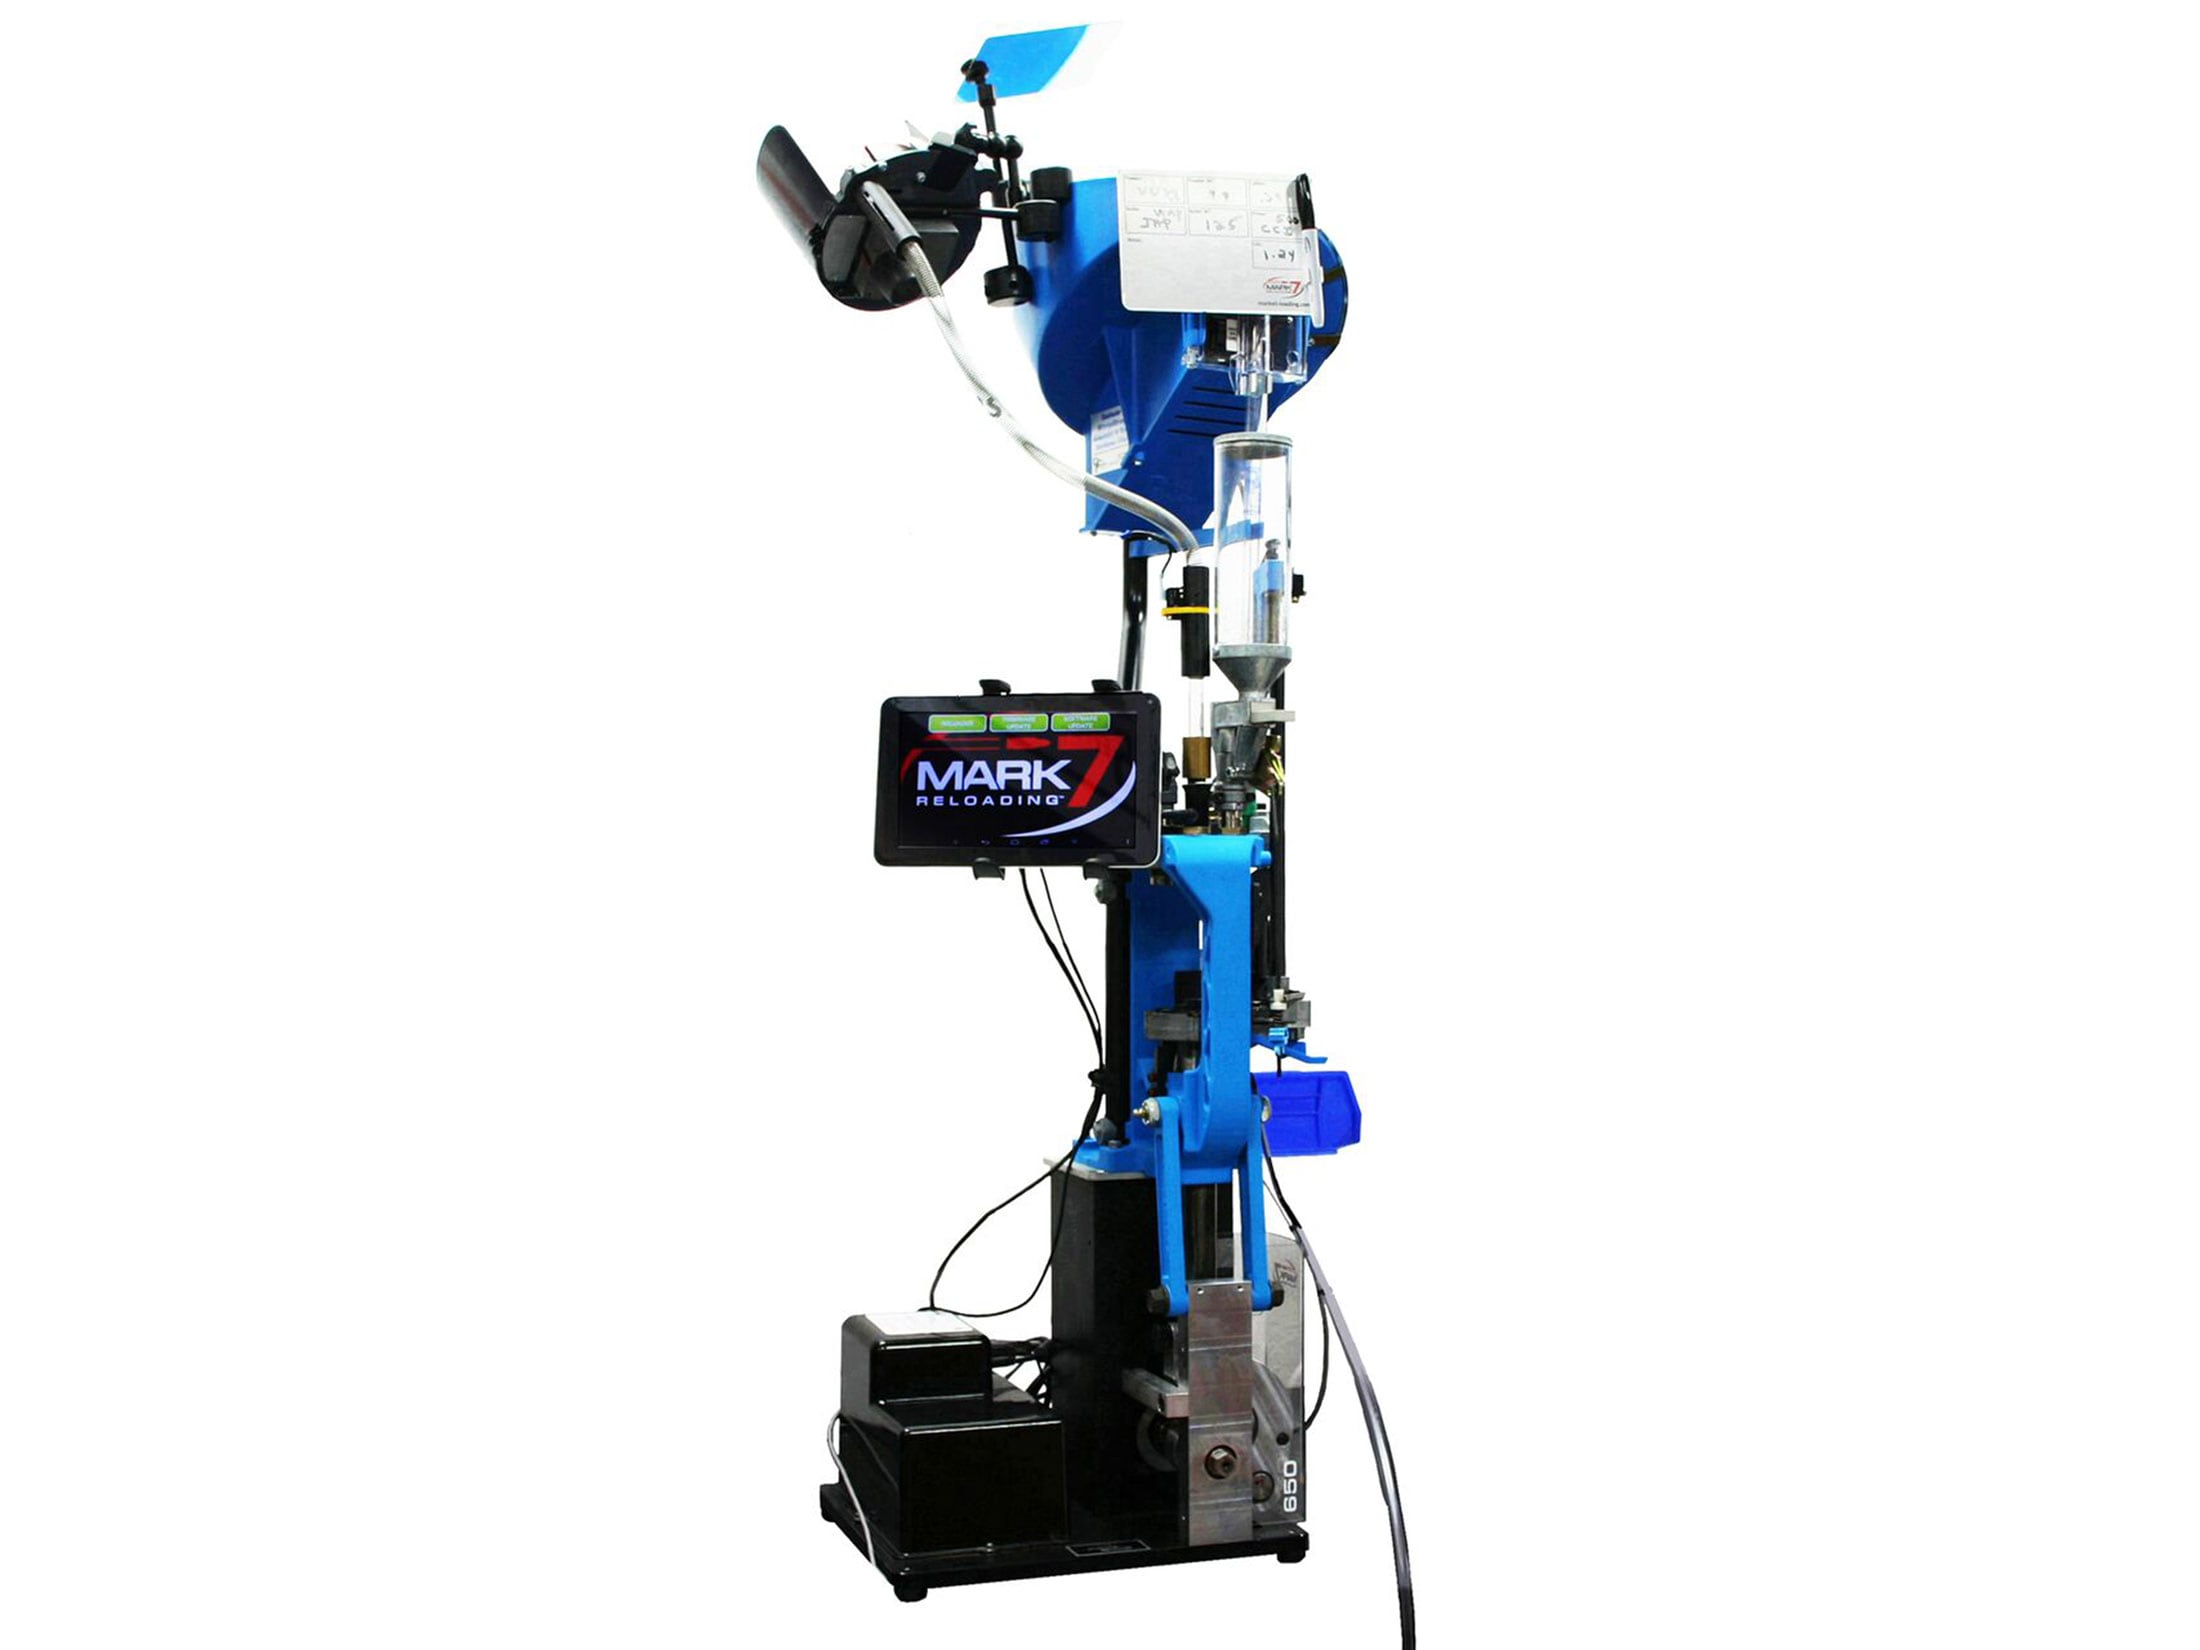 Mark 7 Reloading 650 X Autodrive Dillon 650 Press 110 Volt